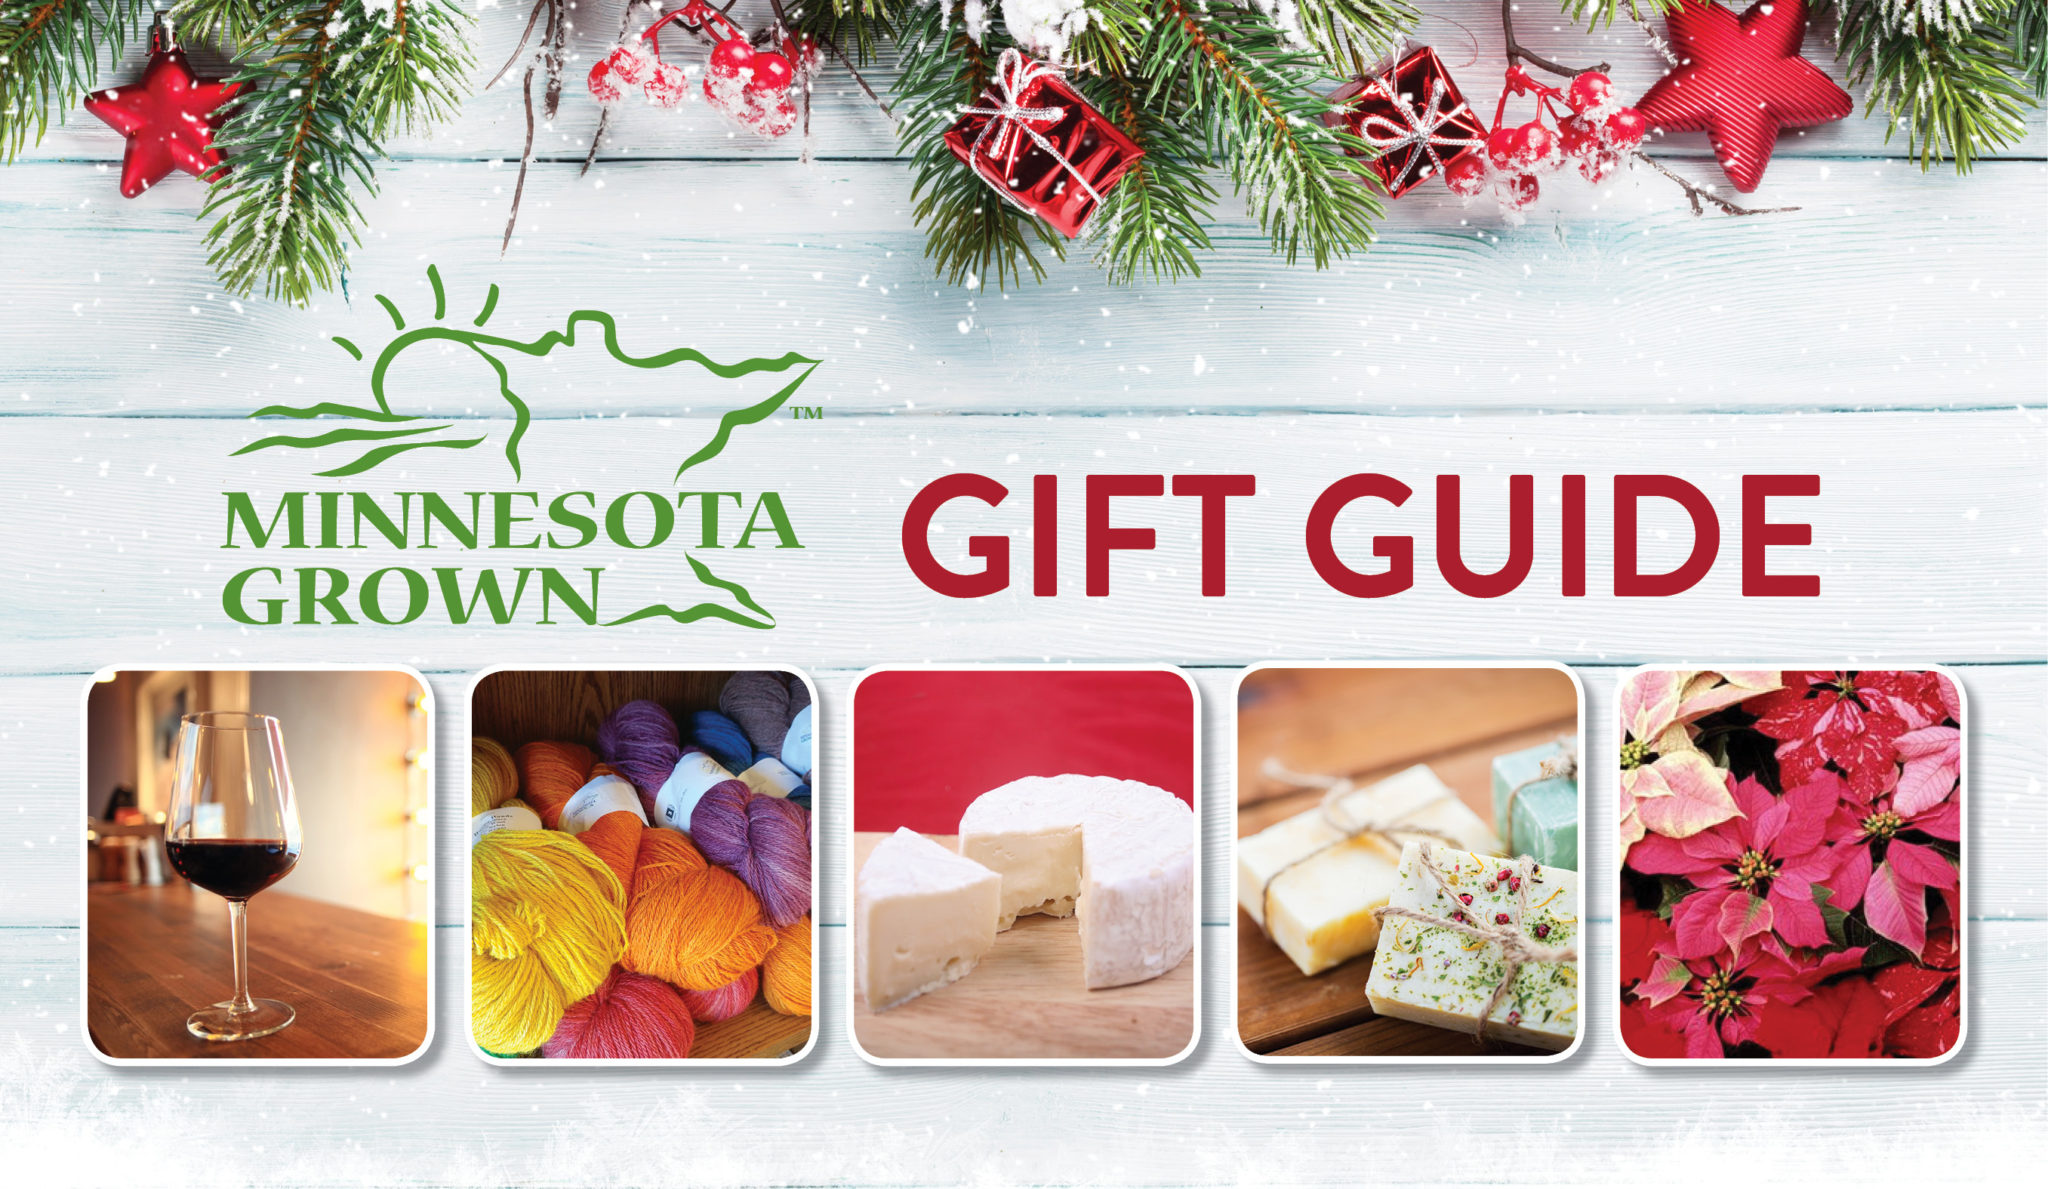 MN Grown Gift Guide 2018 Ad 1302 x 756